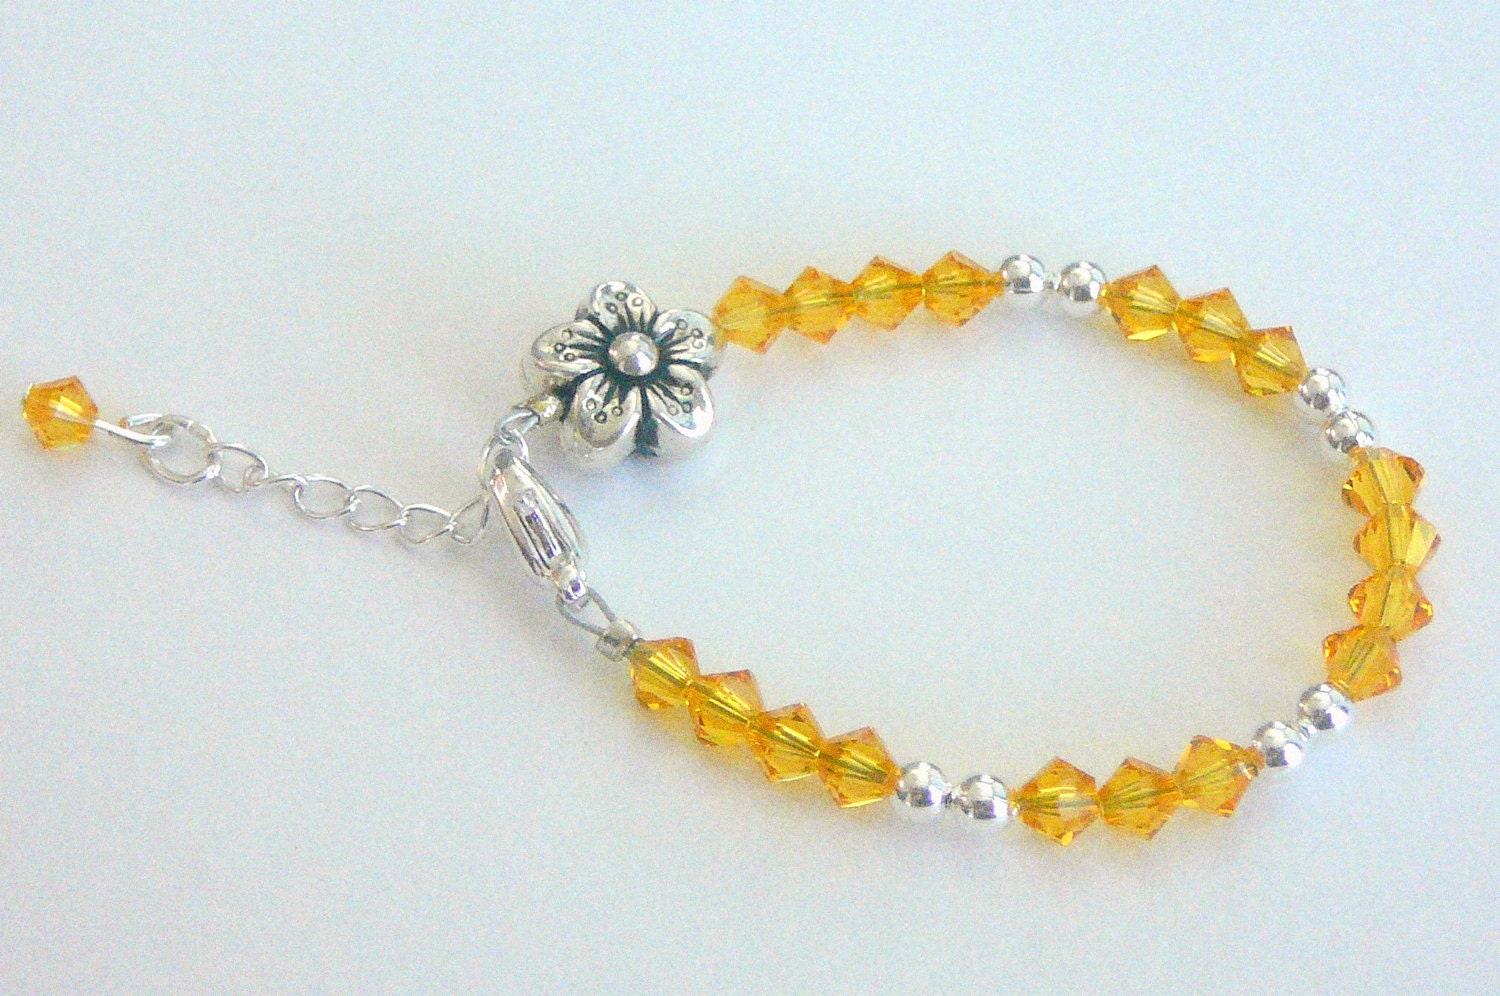 SALE LAST One - Sunflower Swarovski Crystal Baby/Child Bracelet with 1 inch Extender -Christmas Gift/Stocking Stuffer